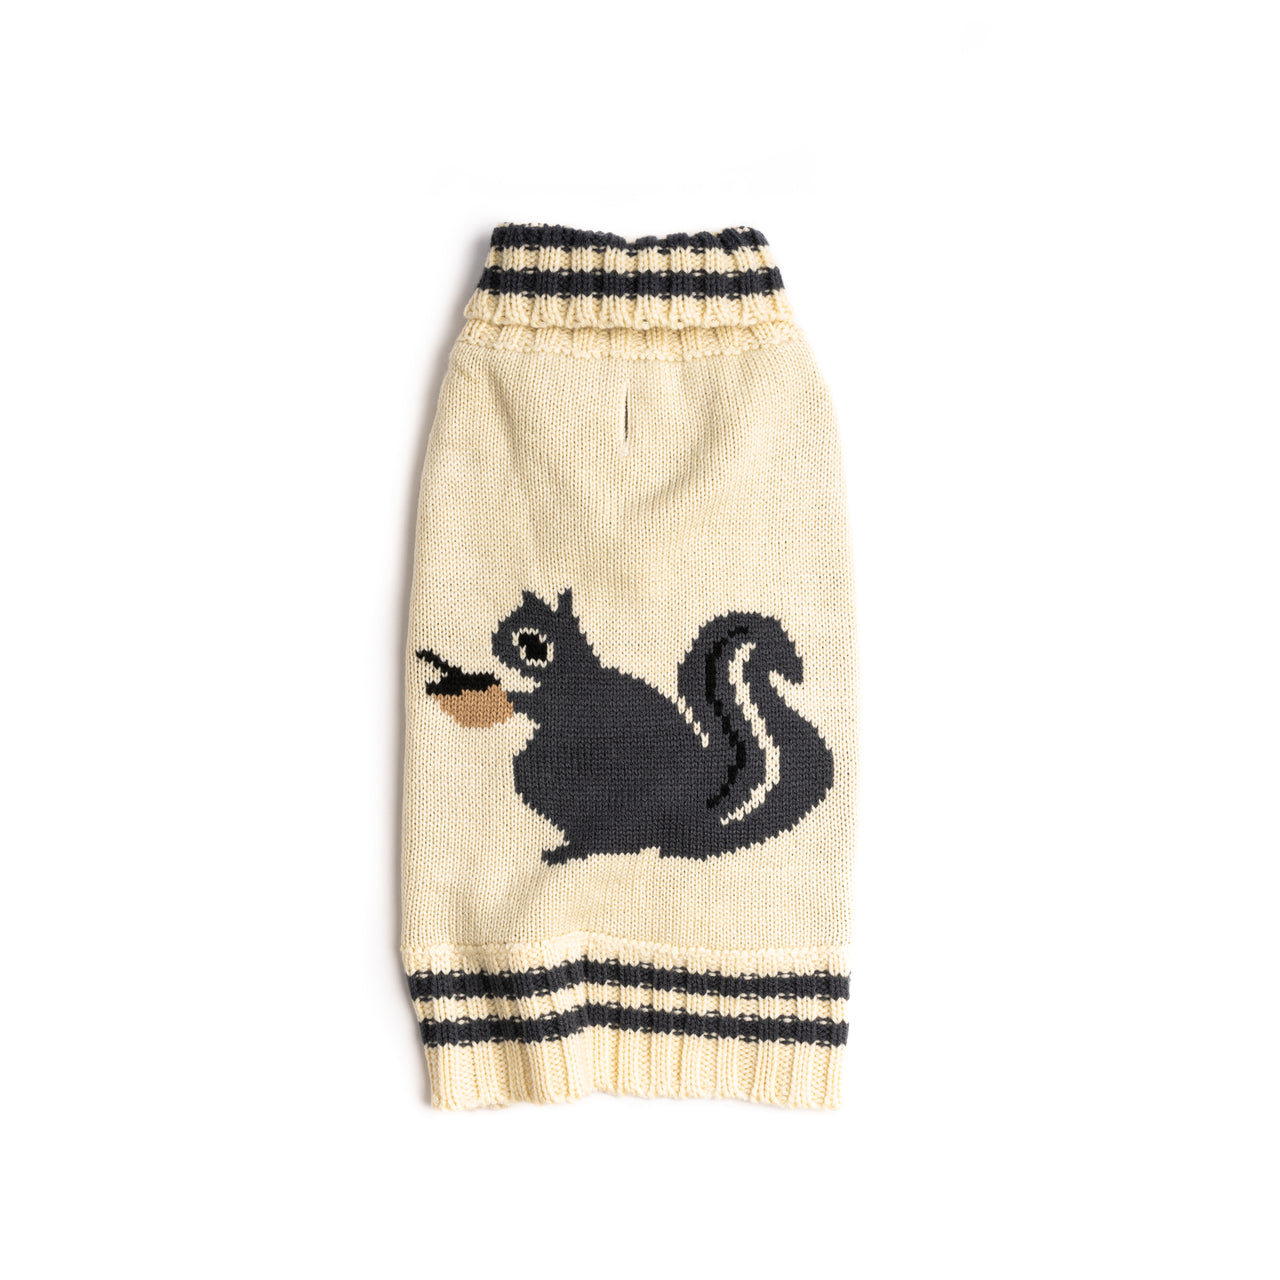 Squirrel Sweater